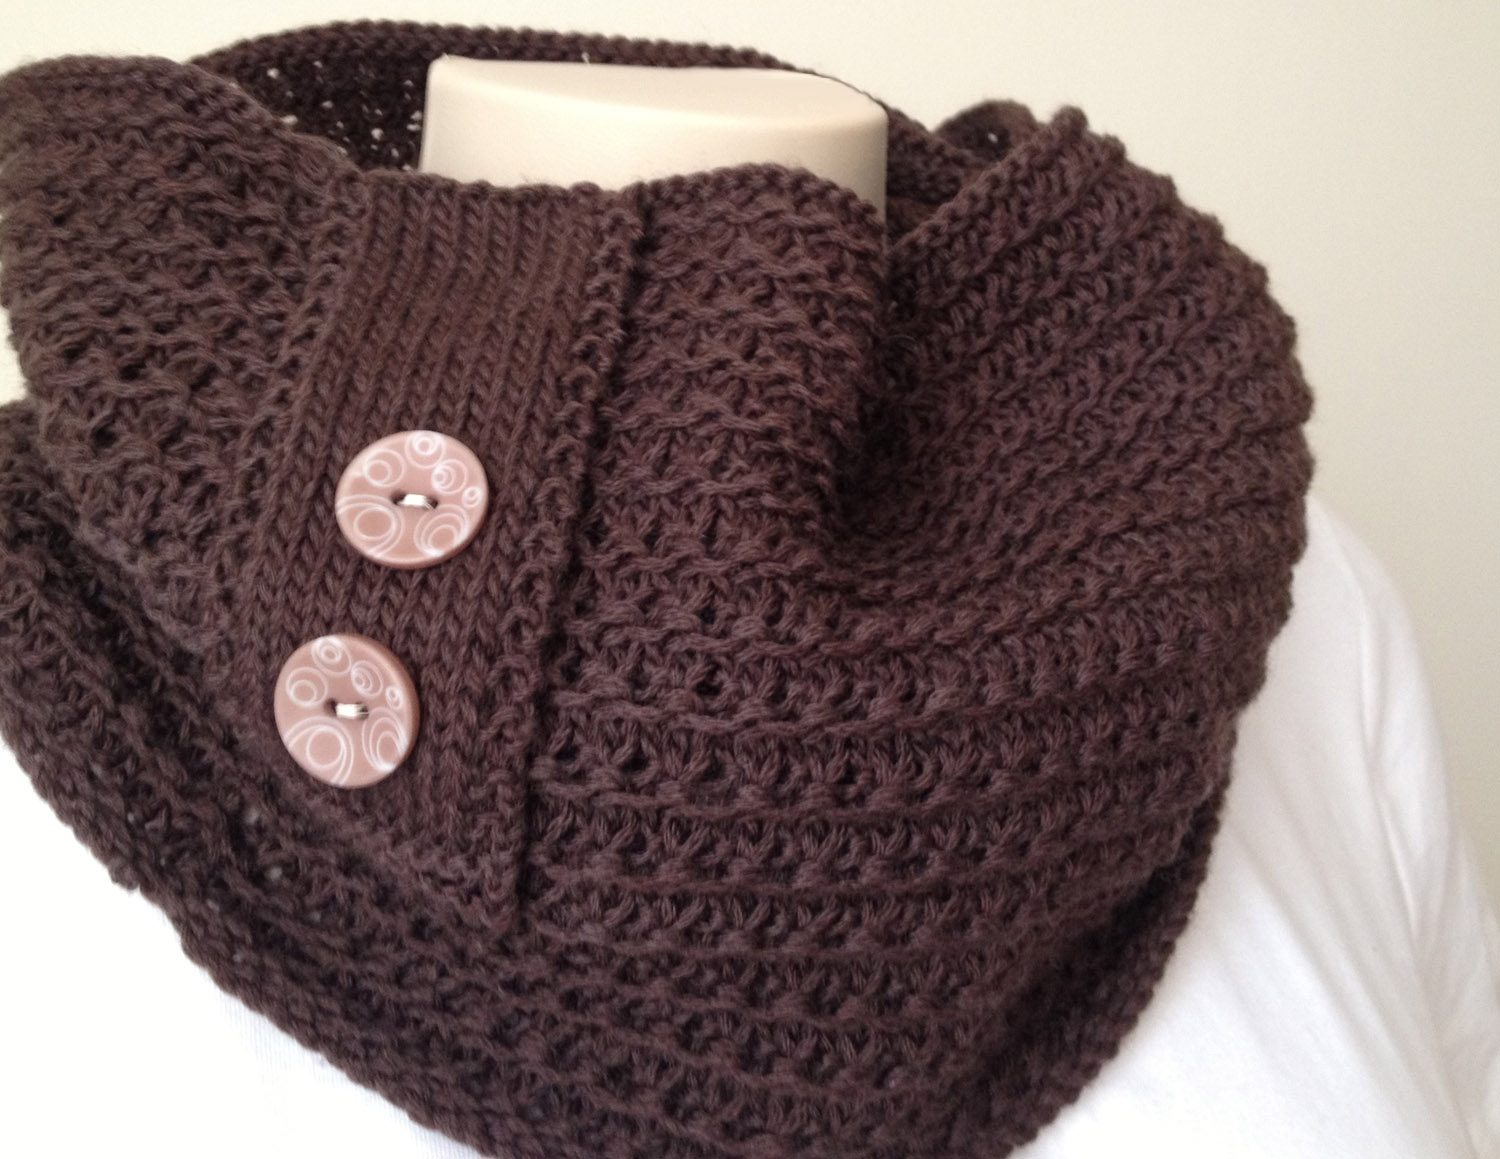 Knitting Pattern Cowl Scarf : New knitting pattern cowl : Chocolate Cowl Deux Brins de Maille